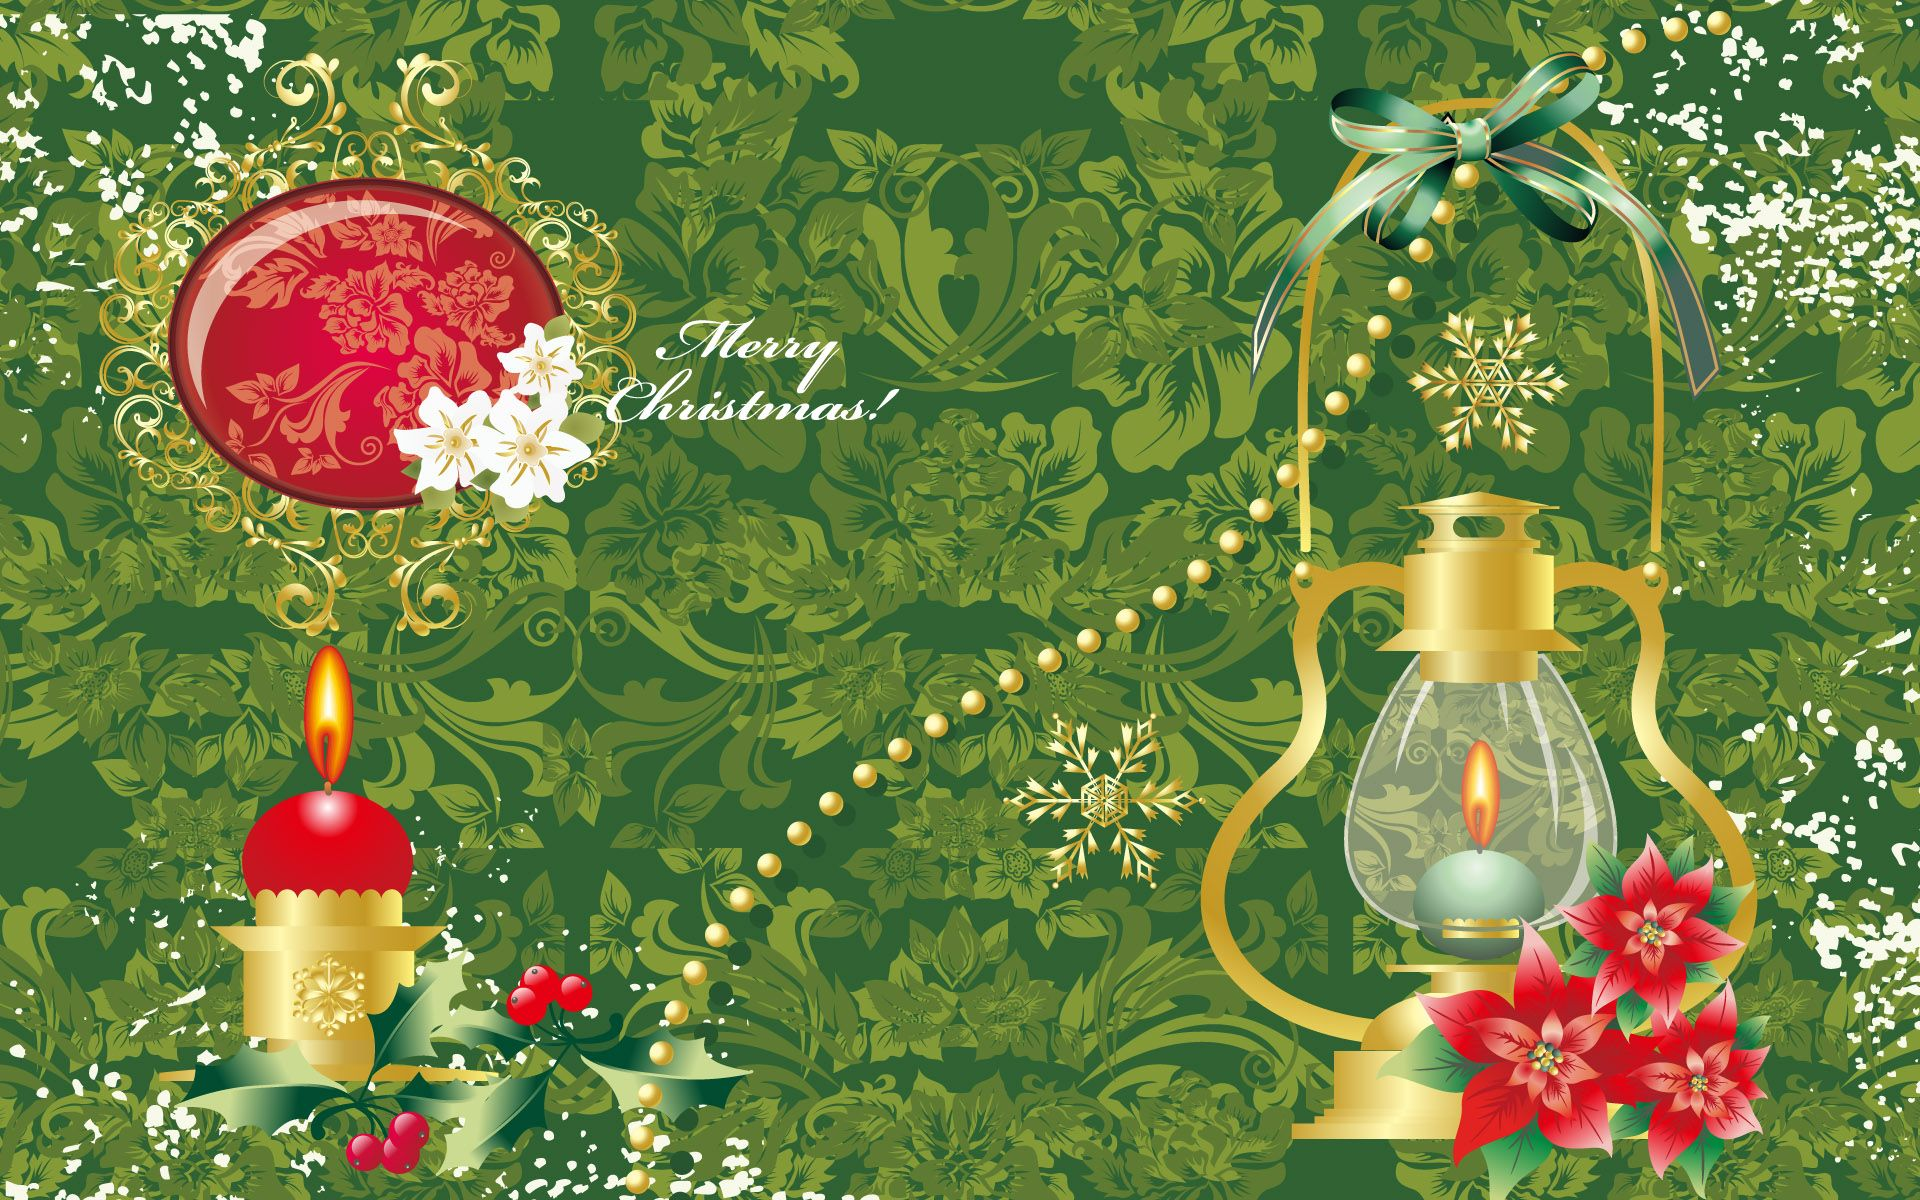 Background Christmas Themes Keyword Gmail wallpapers HD free